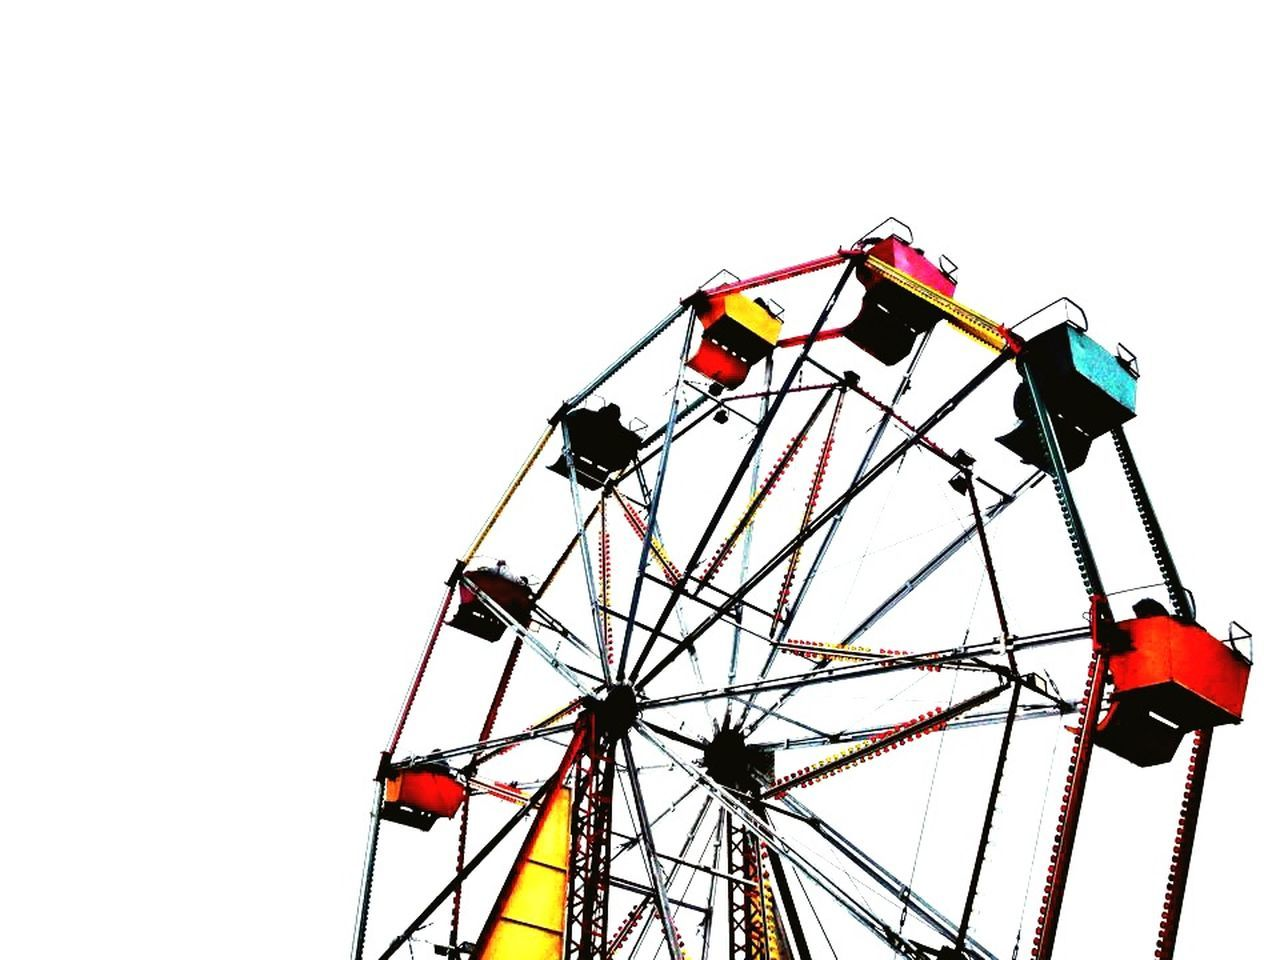 arts culture and entertainment, amusement park, amusement park ride, copy space, leisure activity, clear sky, ferris wheel, white background, low angle view, day, outdoors, no people